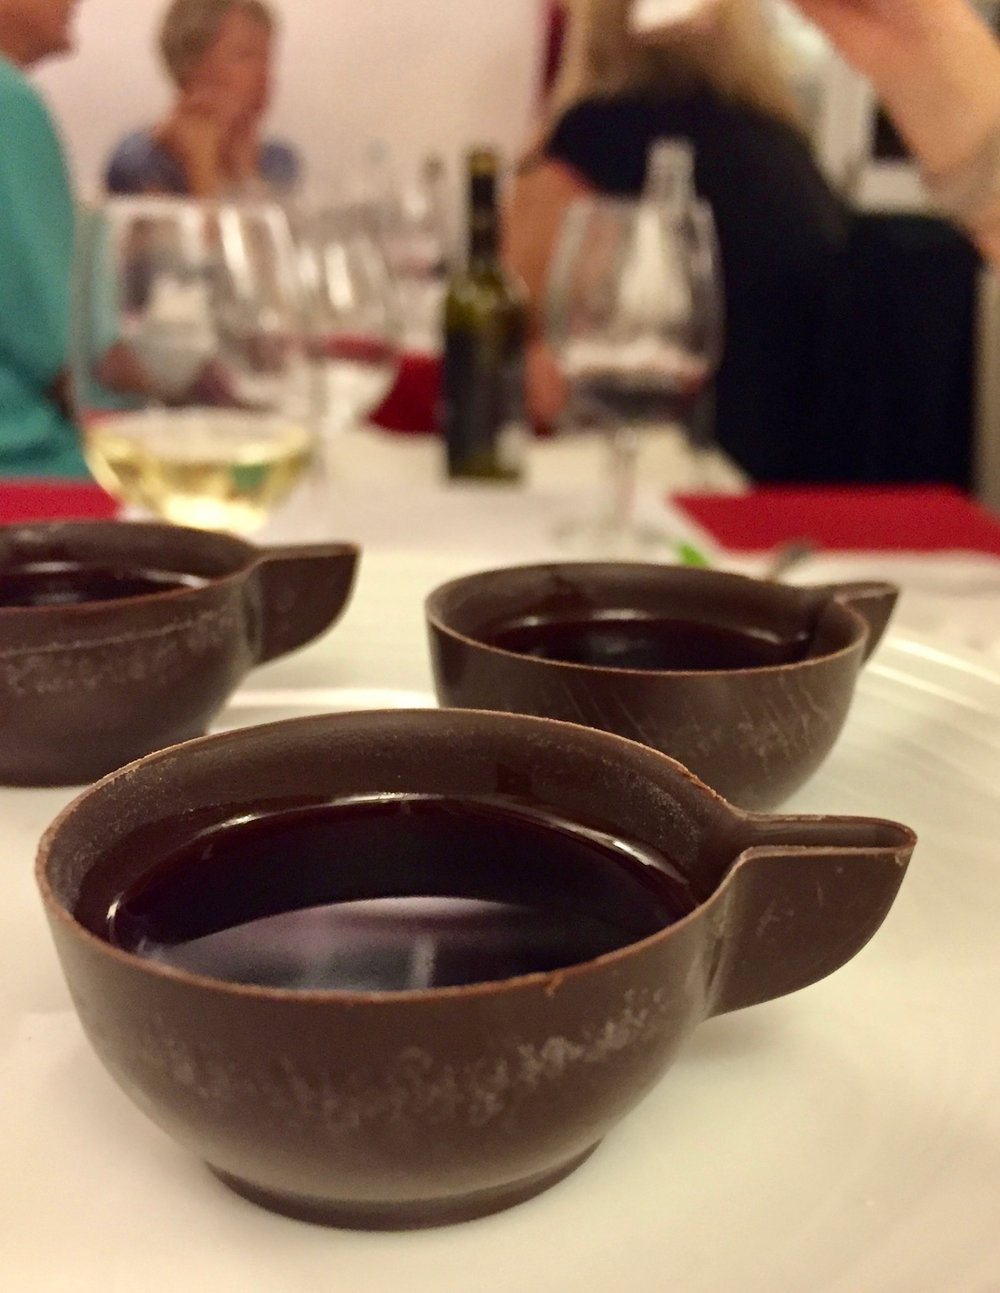 how to drink ginja: in a chocolate cup, of course